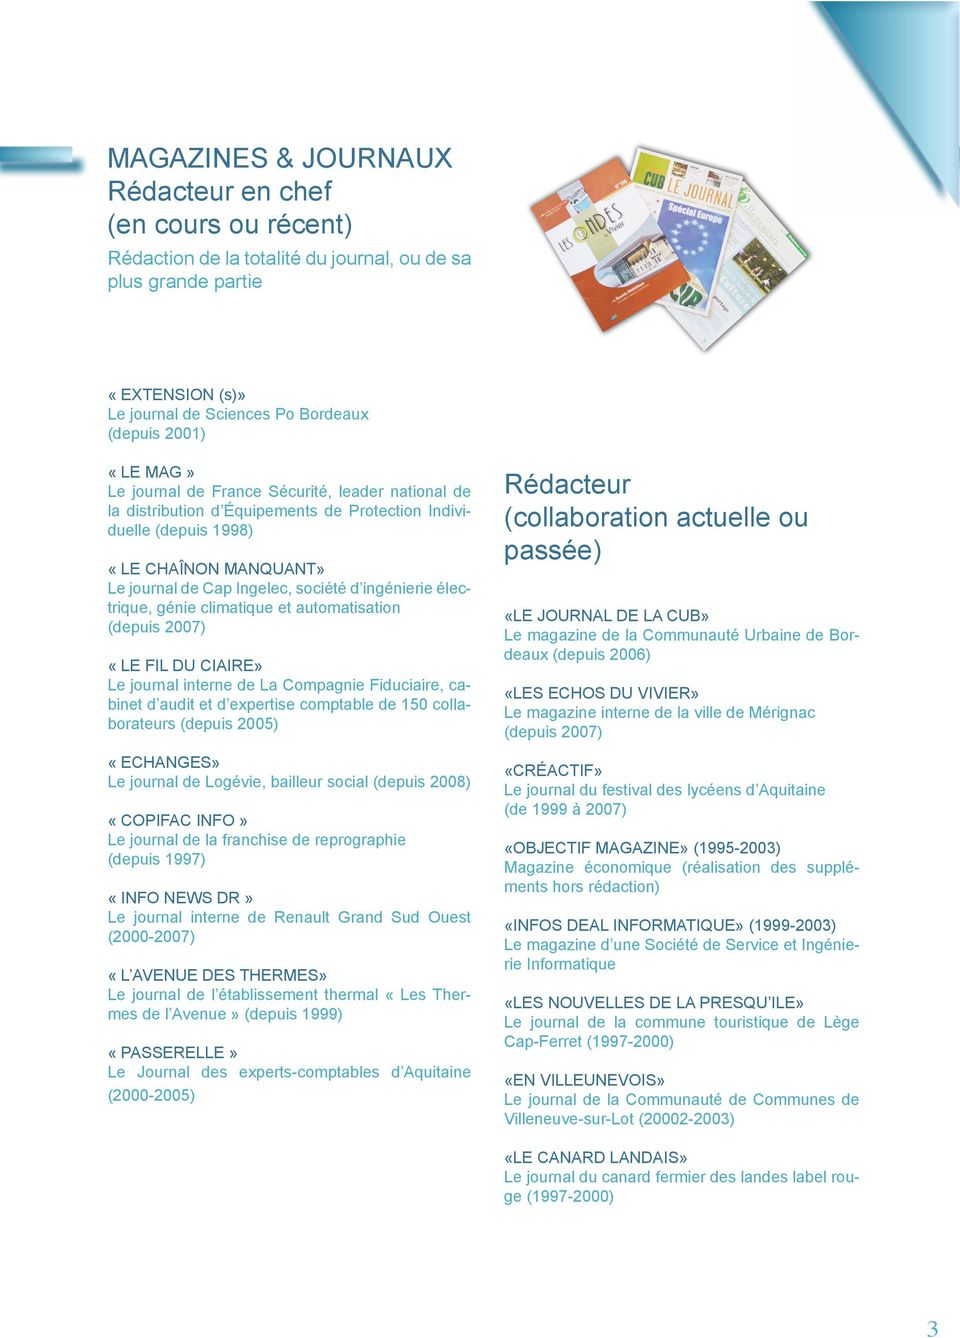 électrique, génie climatique et automatisation (depuis 2007) «LE FIL DU CIAIRE» Le journal interne de La Compagnie Fiduciaire, cabinet d audit et d expertise comptable de 150 collaborateurs (depuis